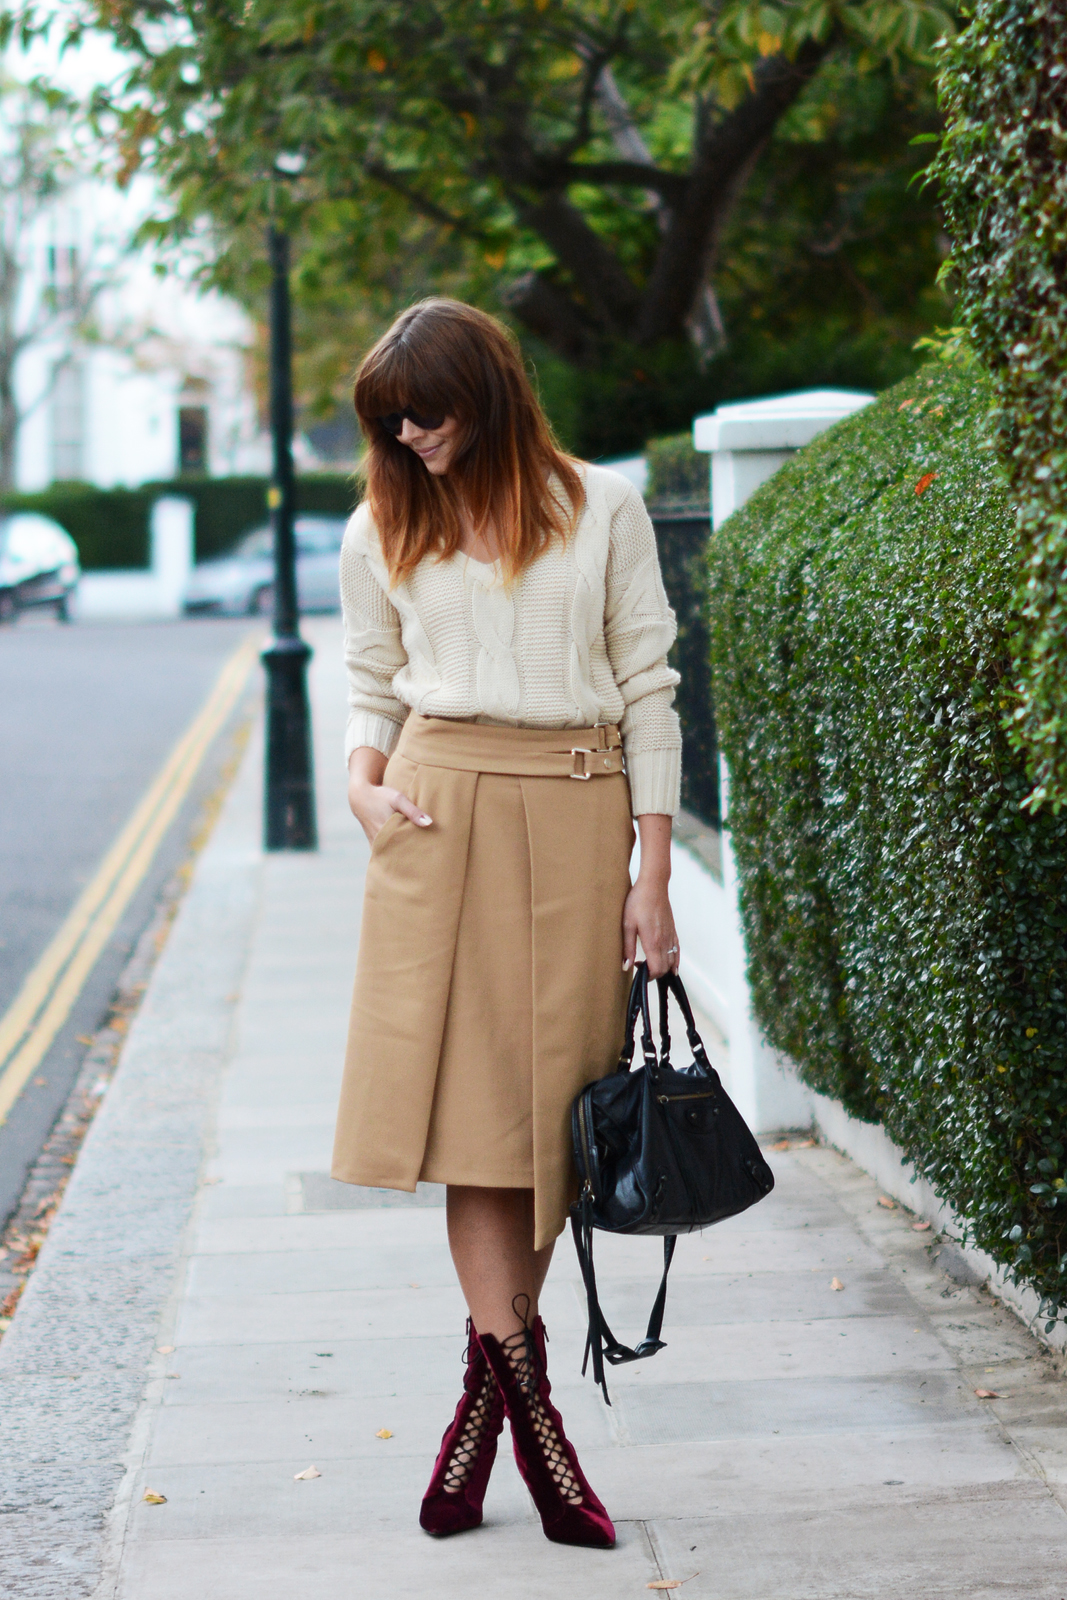 EJSTYLE - OOTD Zara Camel wrap skirt with buckles, chunky cream knitted sweater jumper, Balenciaga motorcycle le dix bag, Kurt Geiger lace up velvet boots metal heel